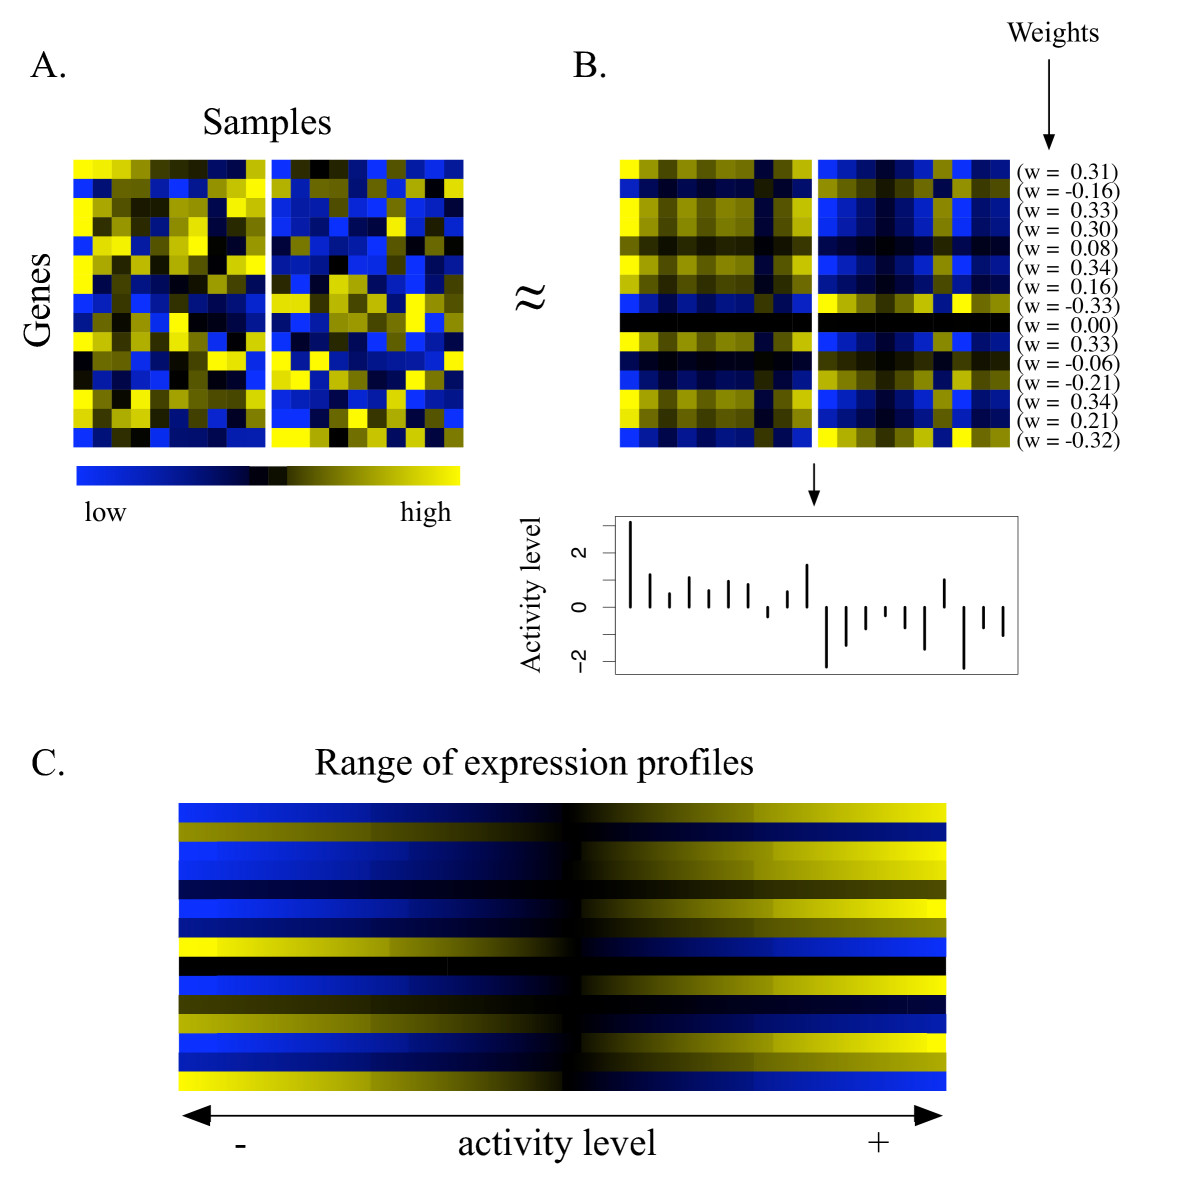 http://static-content.springer.com/image/art%3A10.1186%2F1471-2105-6-225/MediaObjects/12859_2005_Article_550_Fig2_HTML.jpg